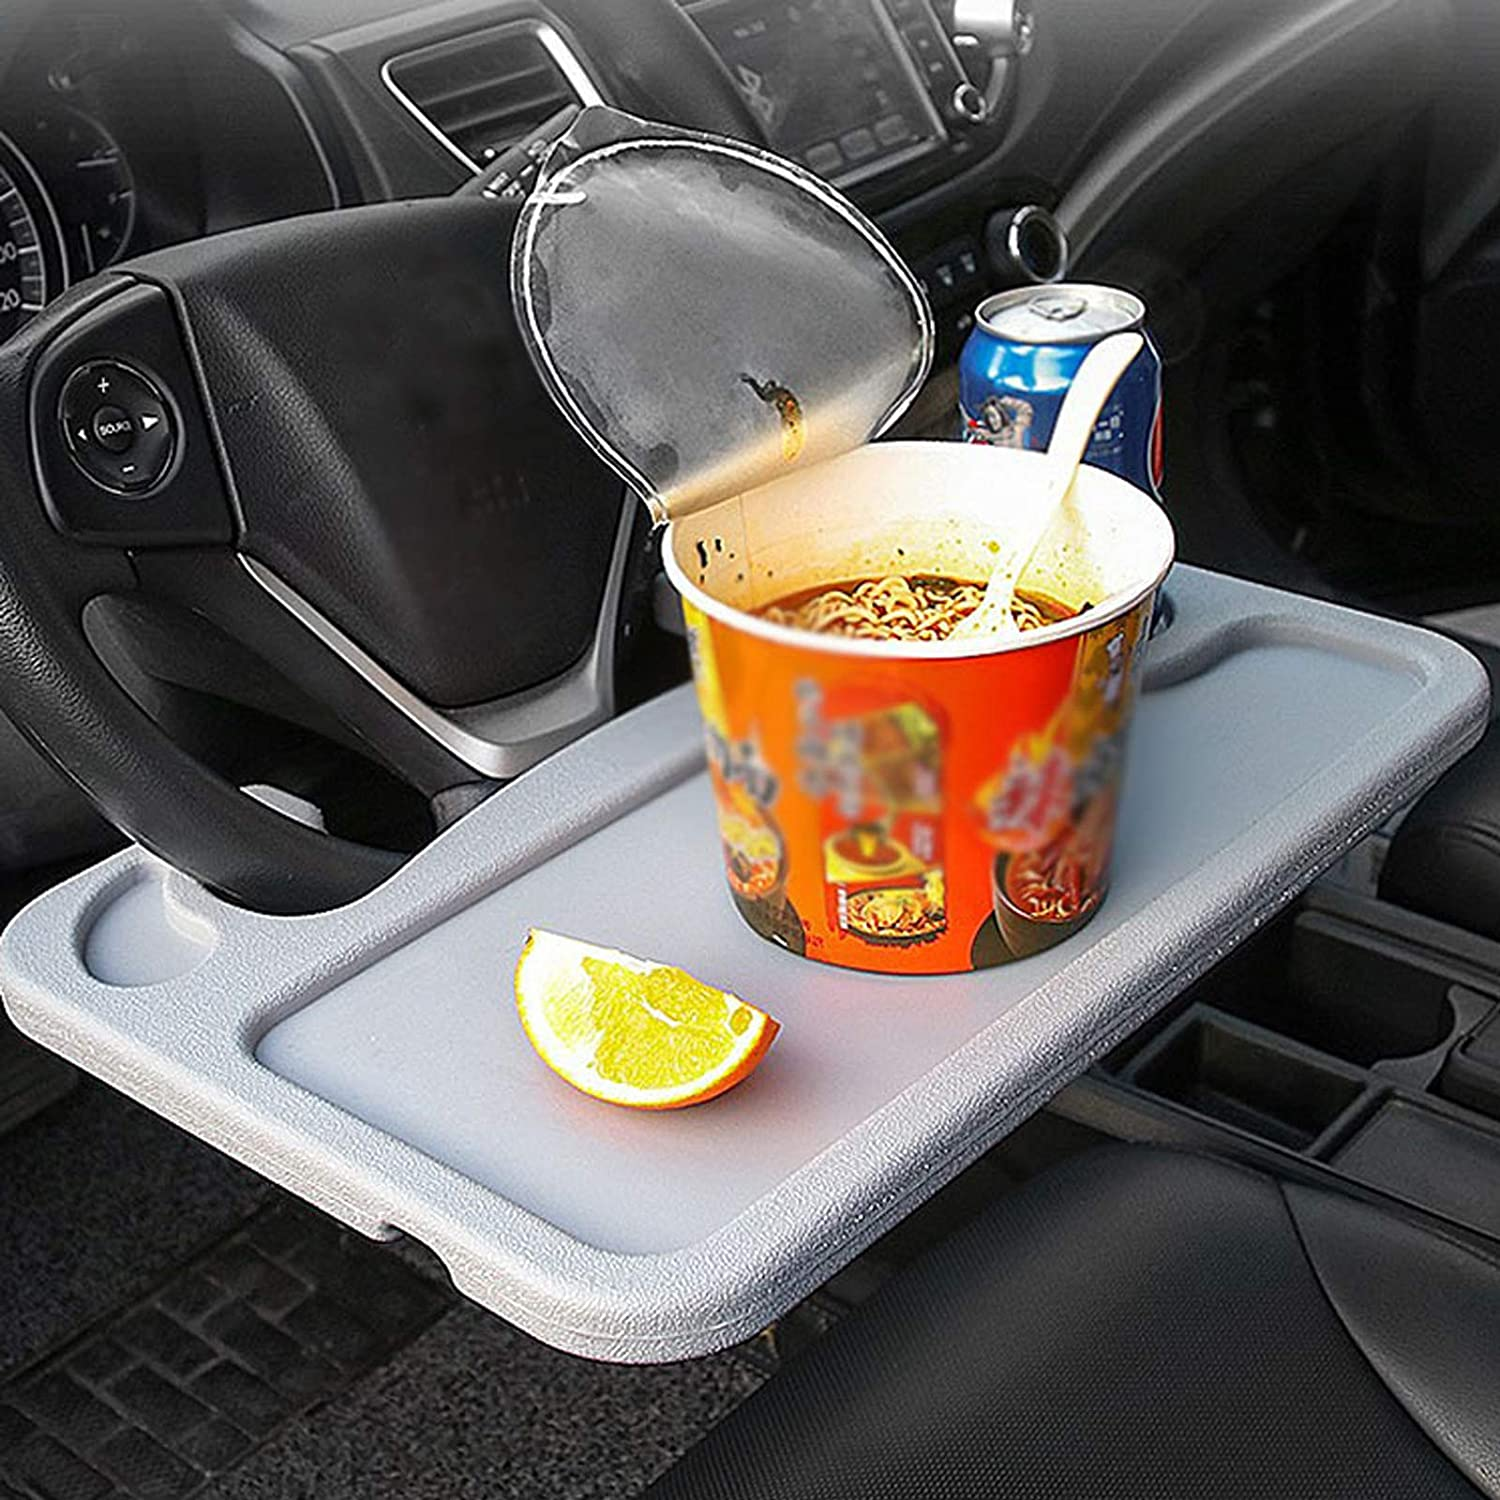 Car Steering Wheel Tray for Eating Food,Steering Wheels Desk Road Trip Essentials for Adults,Car Table Food Trays Organization,Cars Cool Interior Gadgets Accessories(Gary)